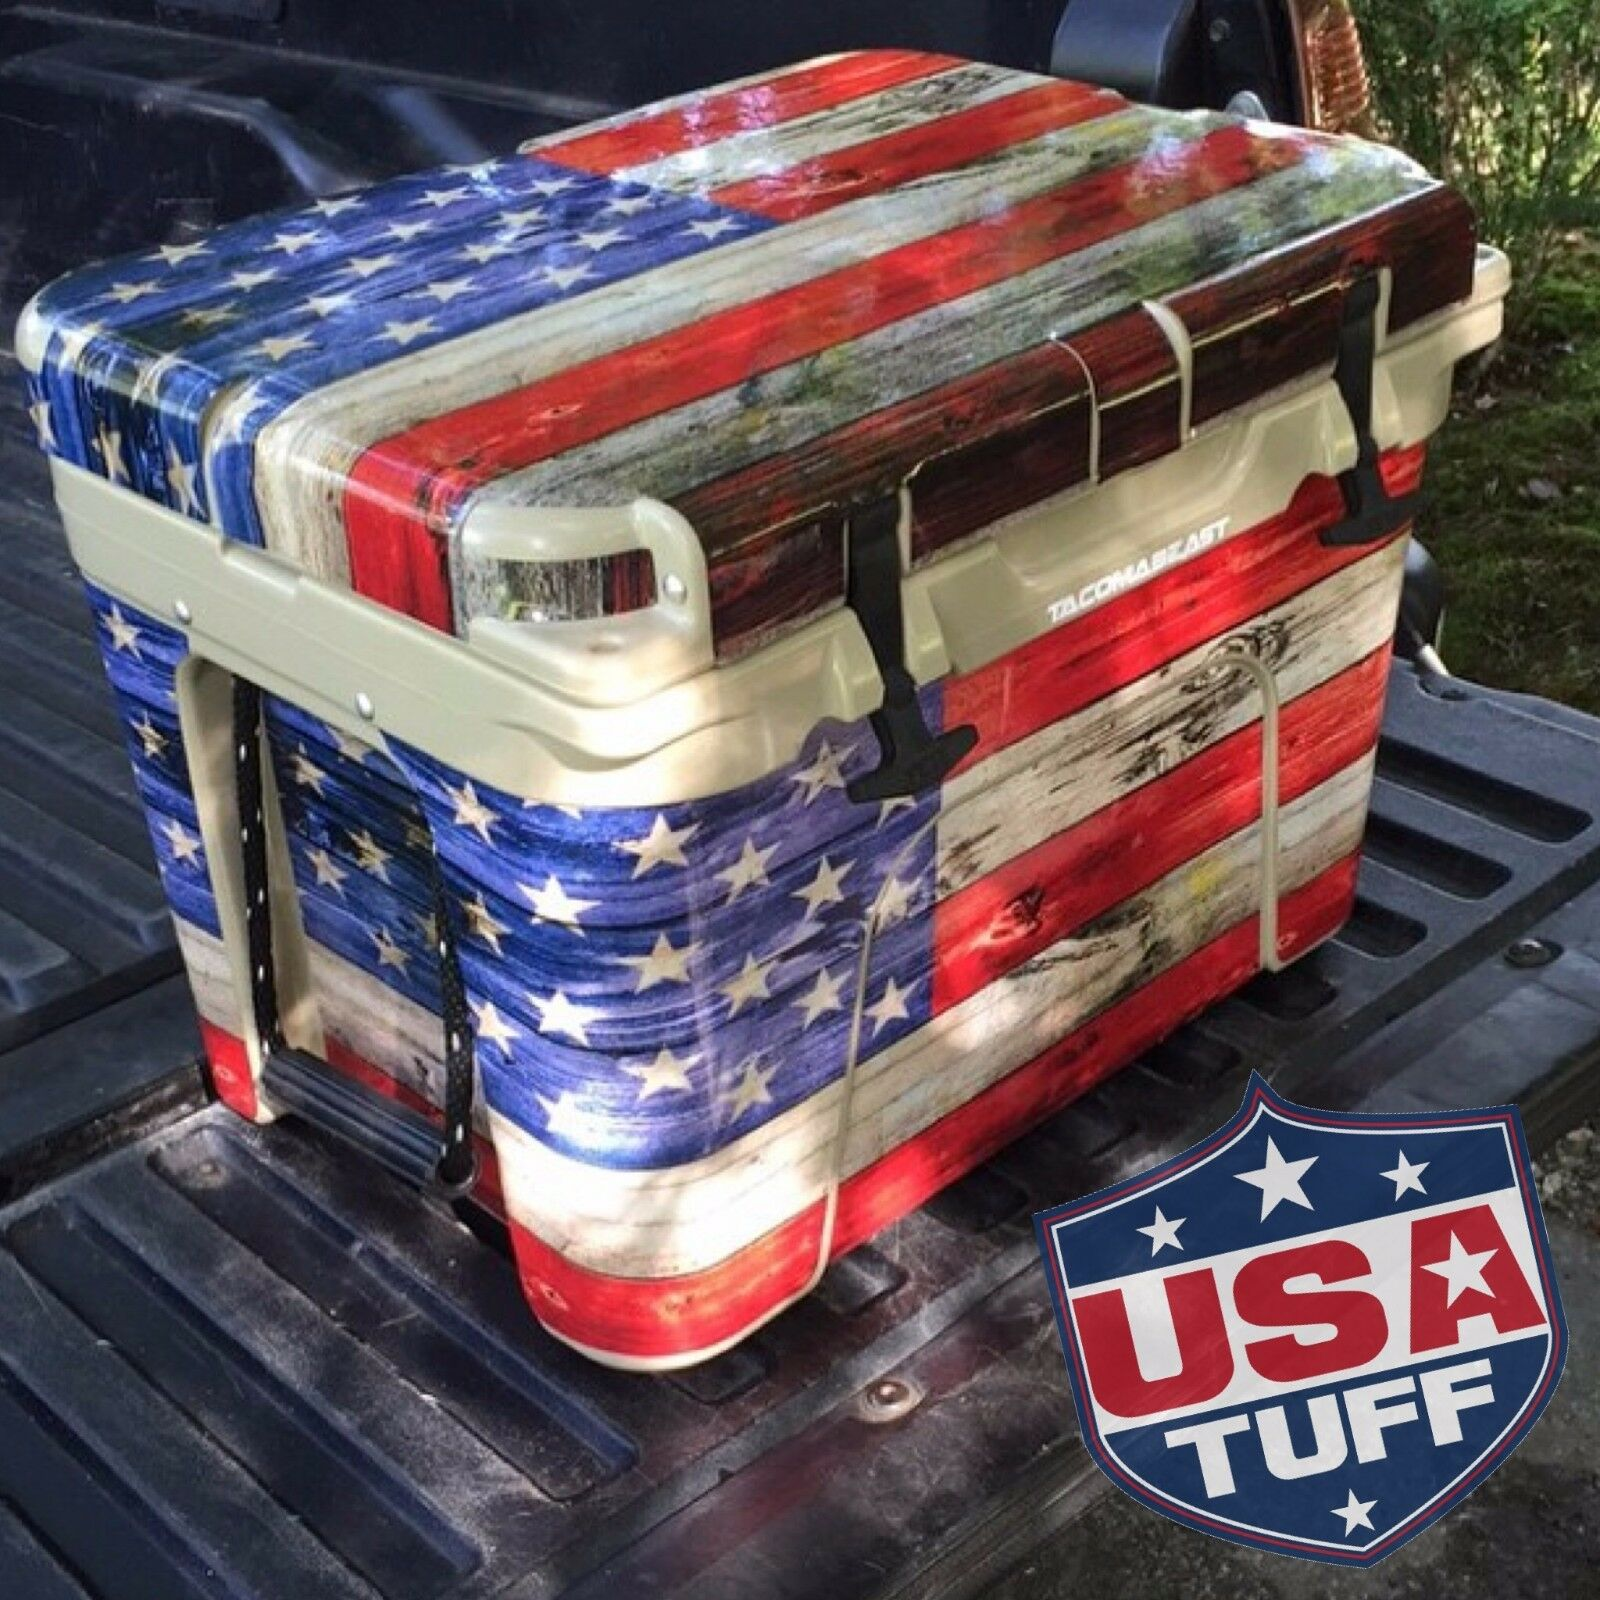 USATuff Decal Custom Cooler Decal USATuff Wrap fits YETI Tundra 45qt FULL Desert Digi Camo dfe464